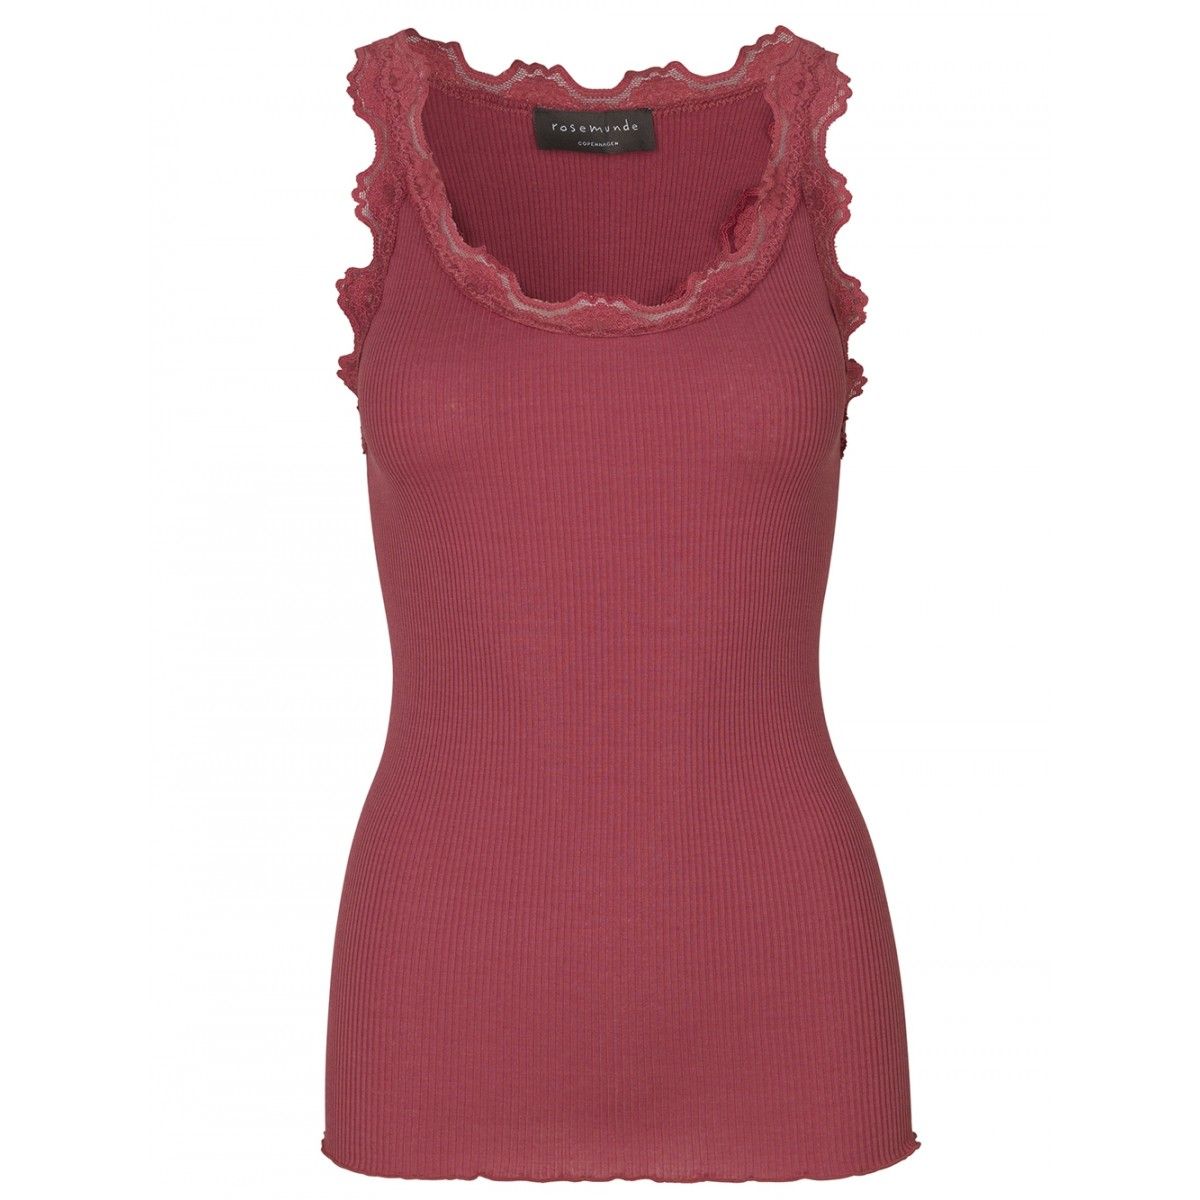 Rosemunde 5205-411 Silk Top Scarlet Red-32